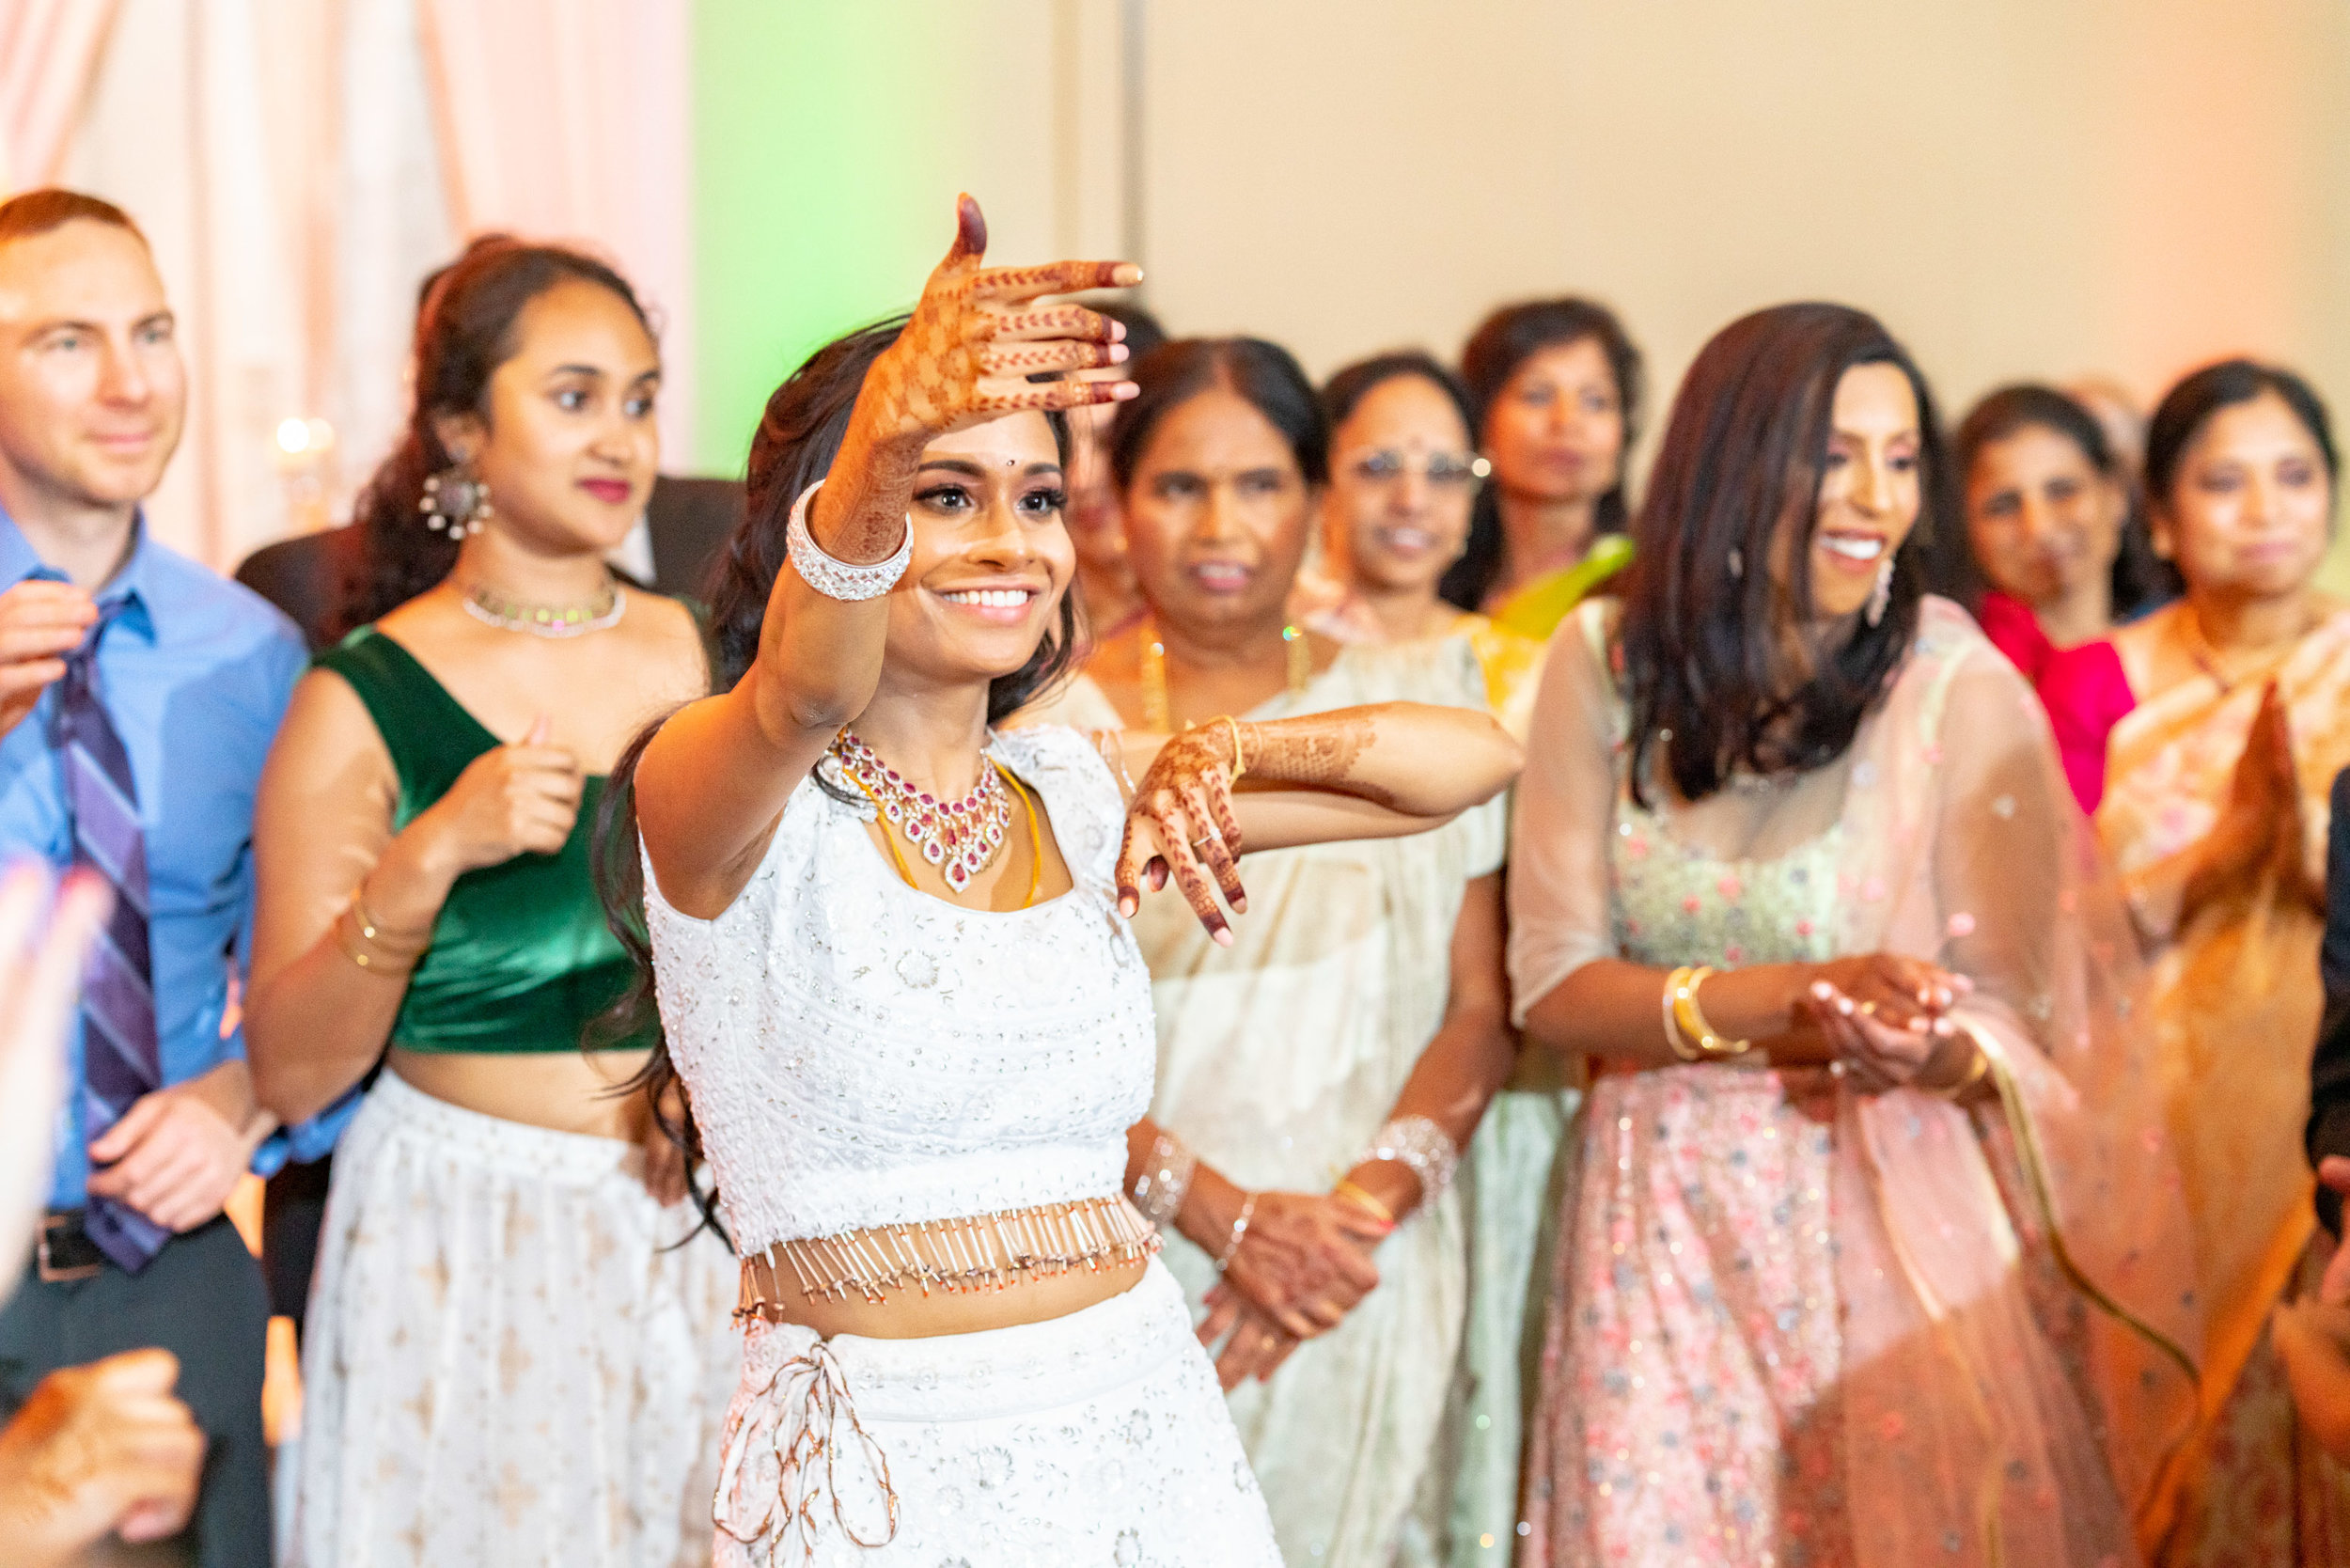 Bride on the dance floor at indian wedding at bethesda north marriott